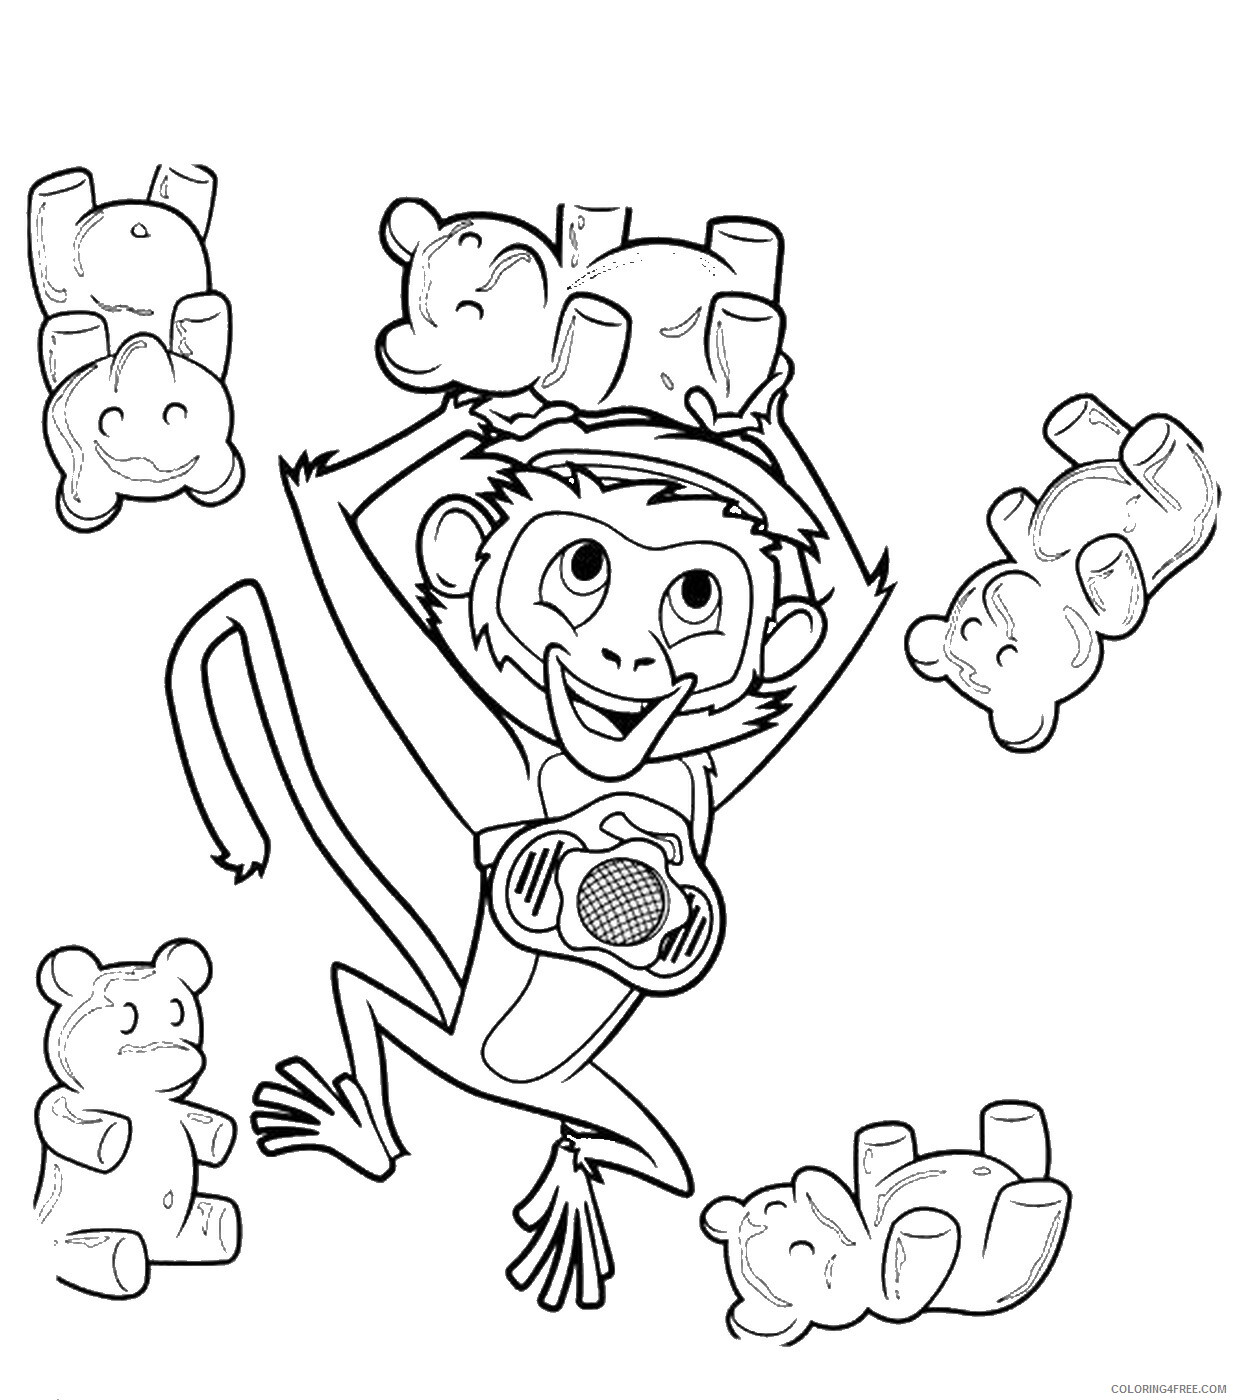 Cloudy With A Chance Of Meatballs Coloring Pages Tv Film Printable 2020 02230 Coloring4free Coloring4free Com